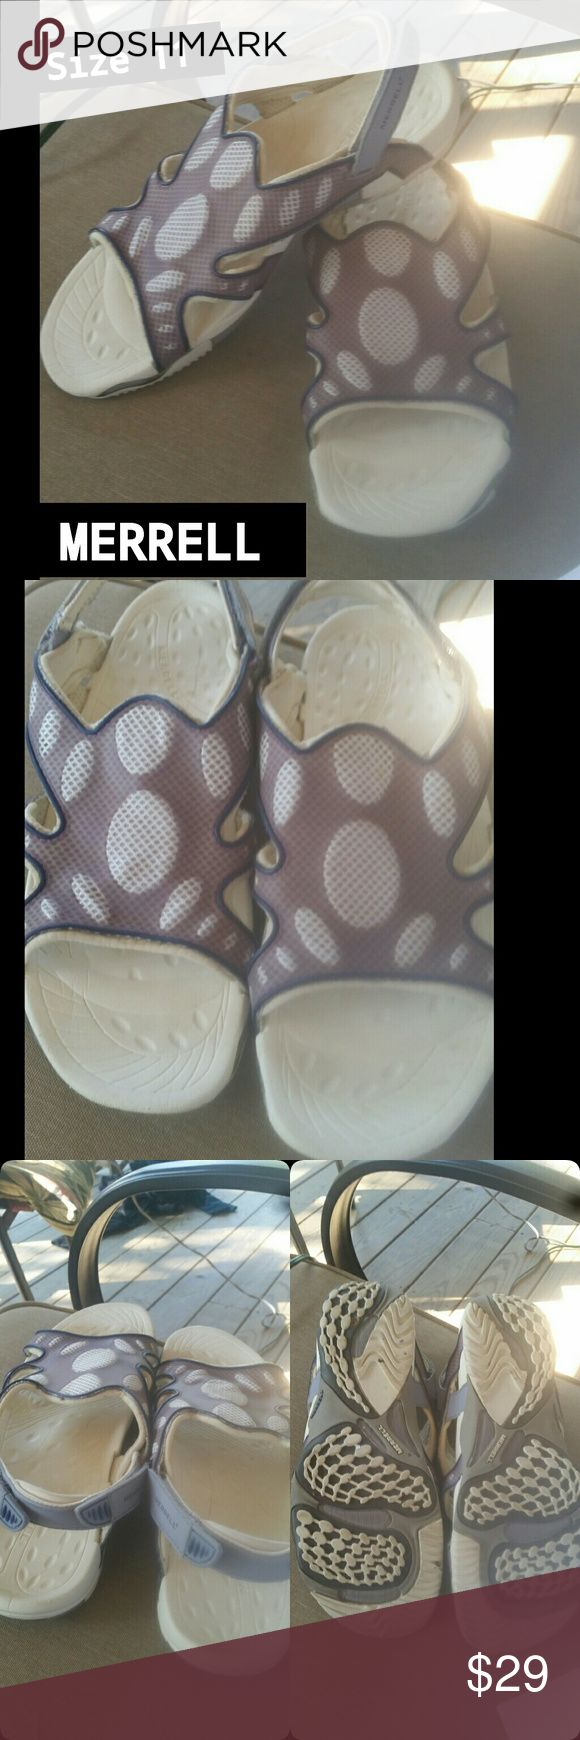 Merrell Sandals! So cute!! Size 11 and the most comfortable shoes ever! See pics for details! Merrell Shoes